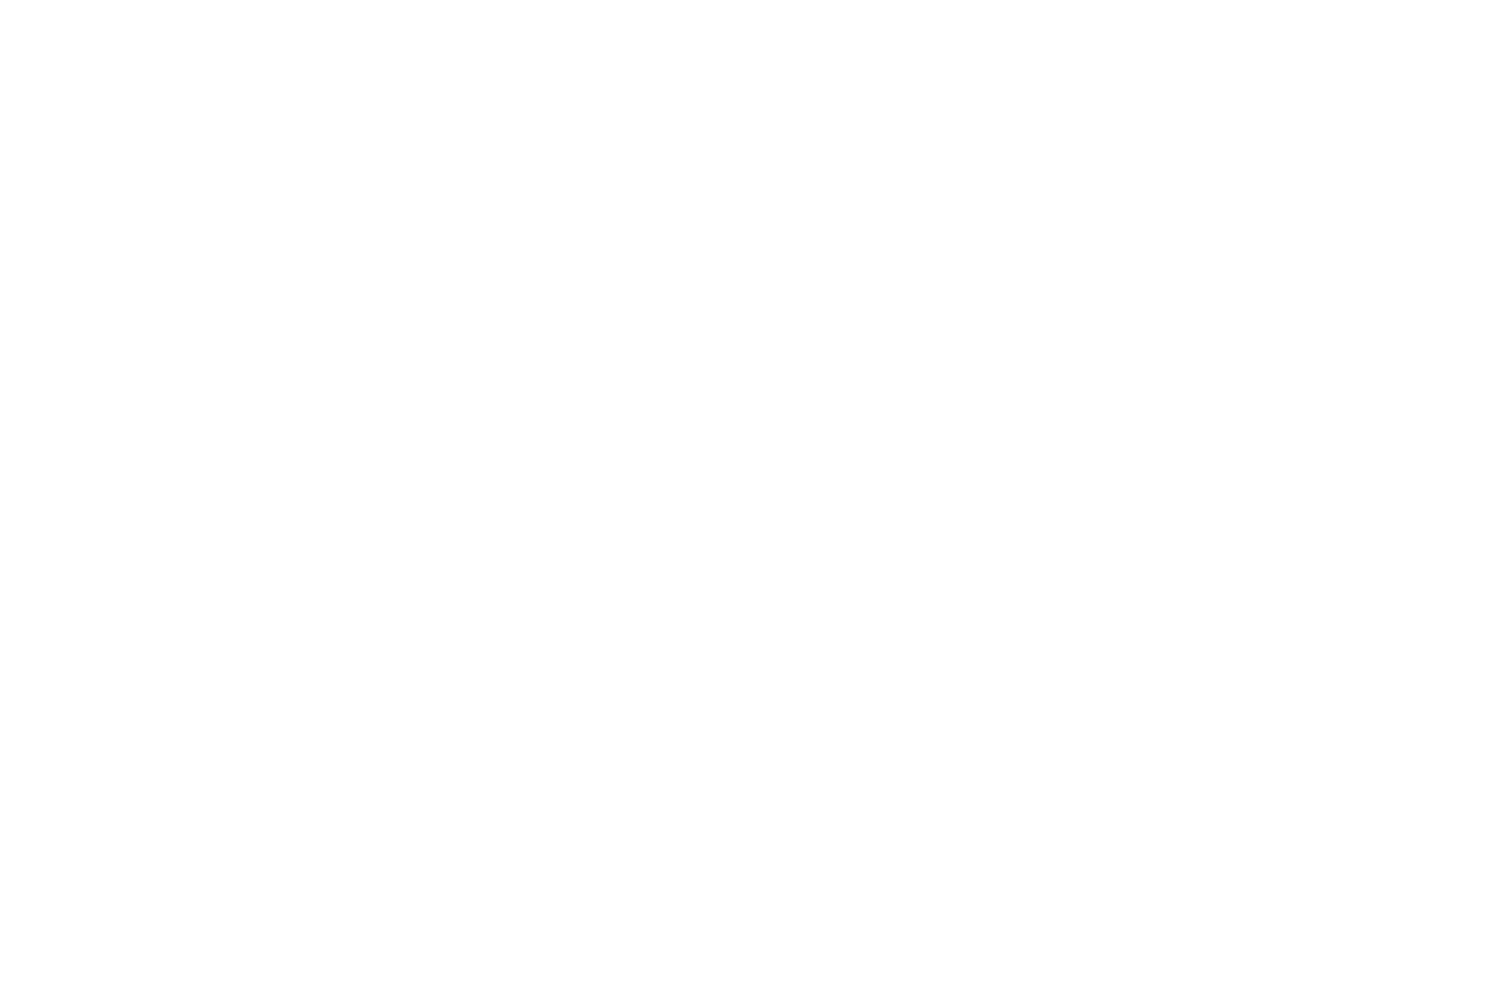 G-Force Capital